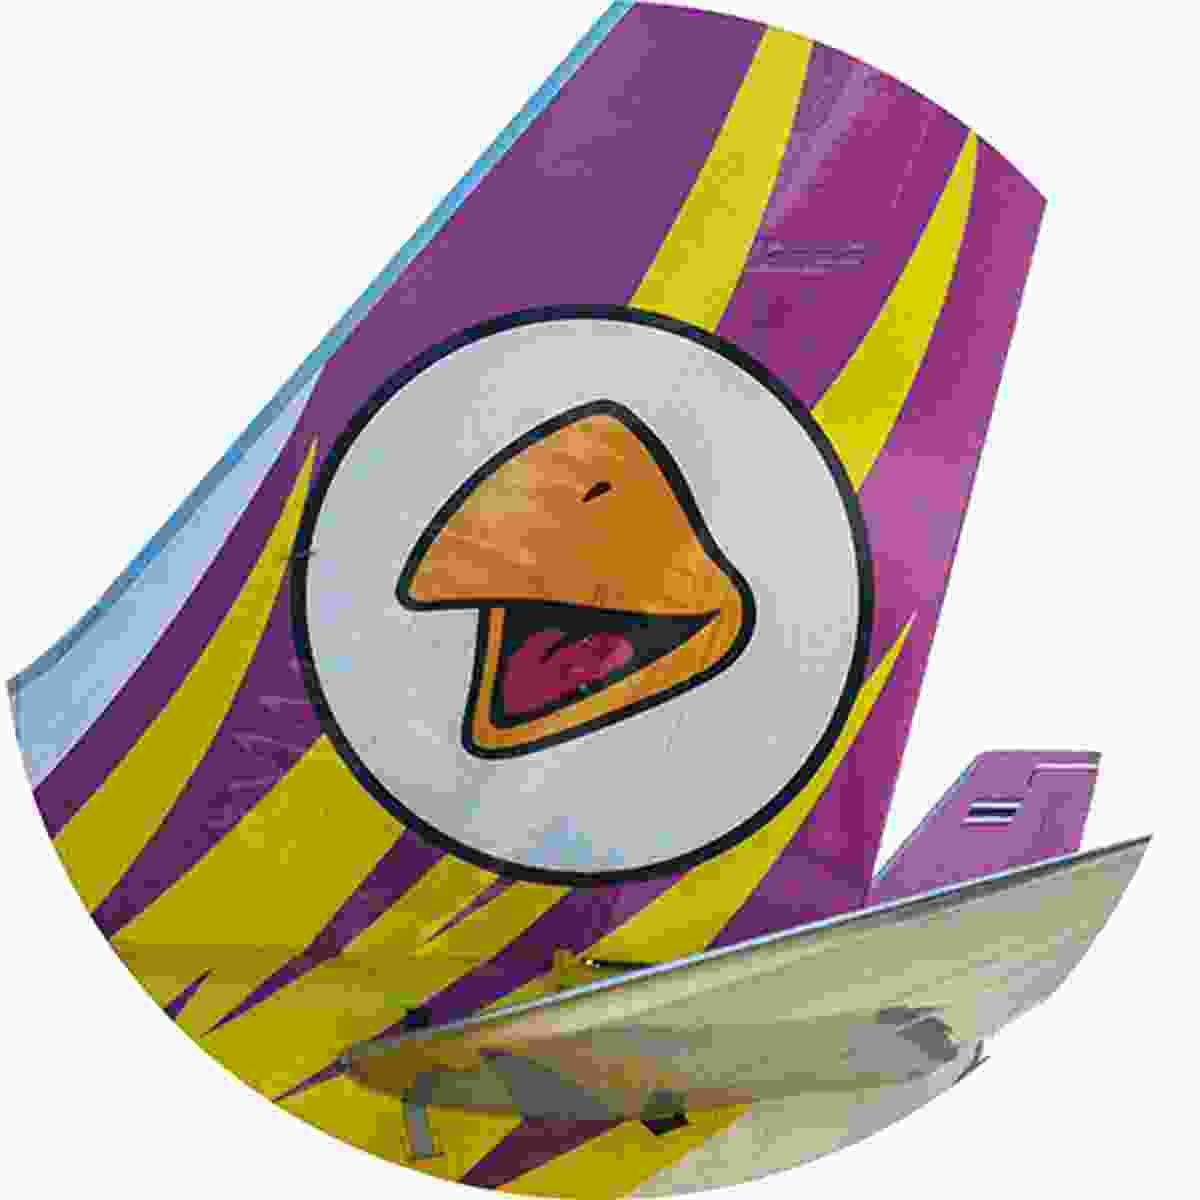 Nok Air's Angry Birds livery (Shutterstock)